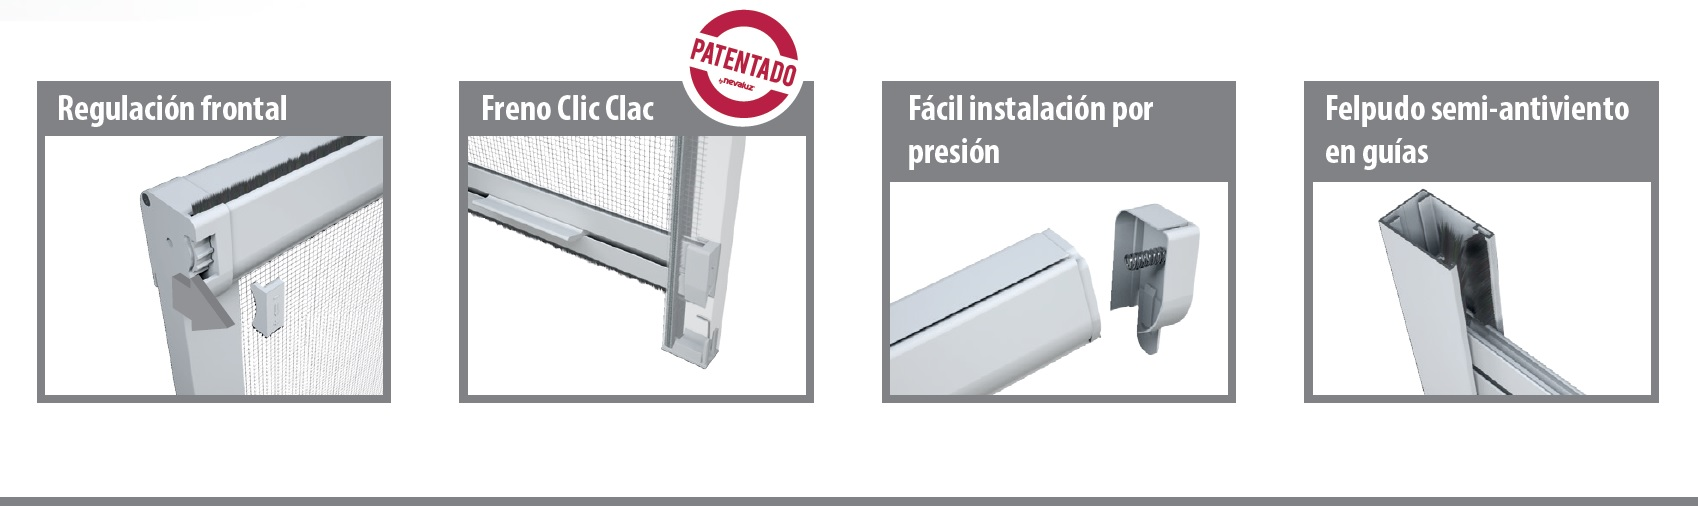 The Swing Mosquito Net Head Includes A New Pressure Installation System To Fit Any Gap In Windows Or Doors